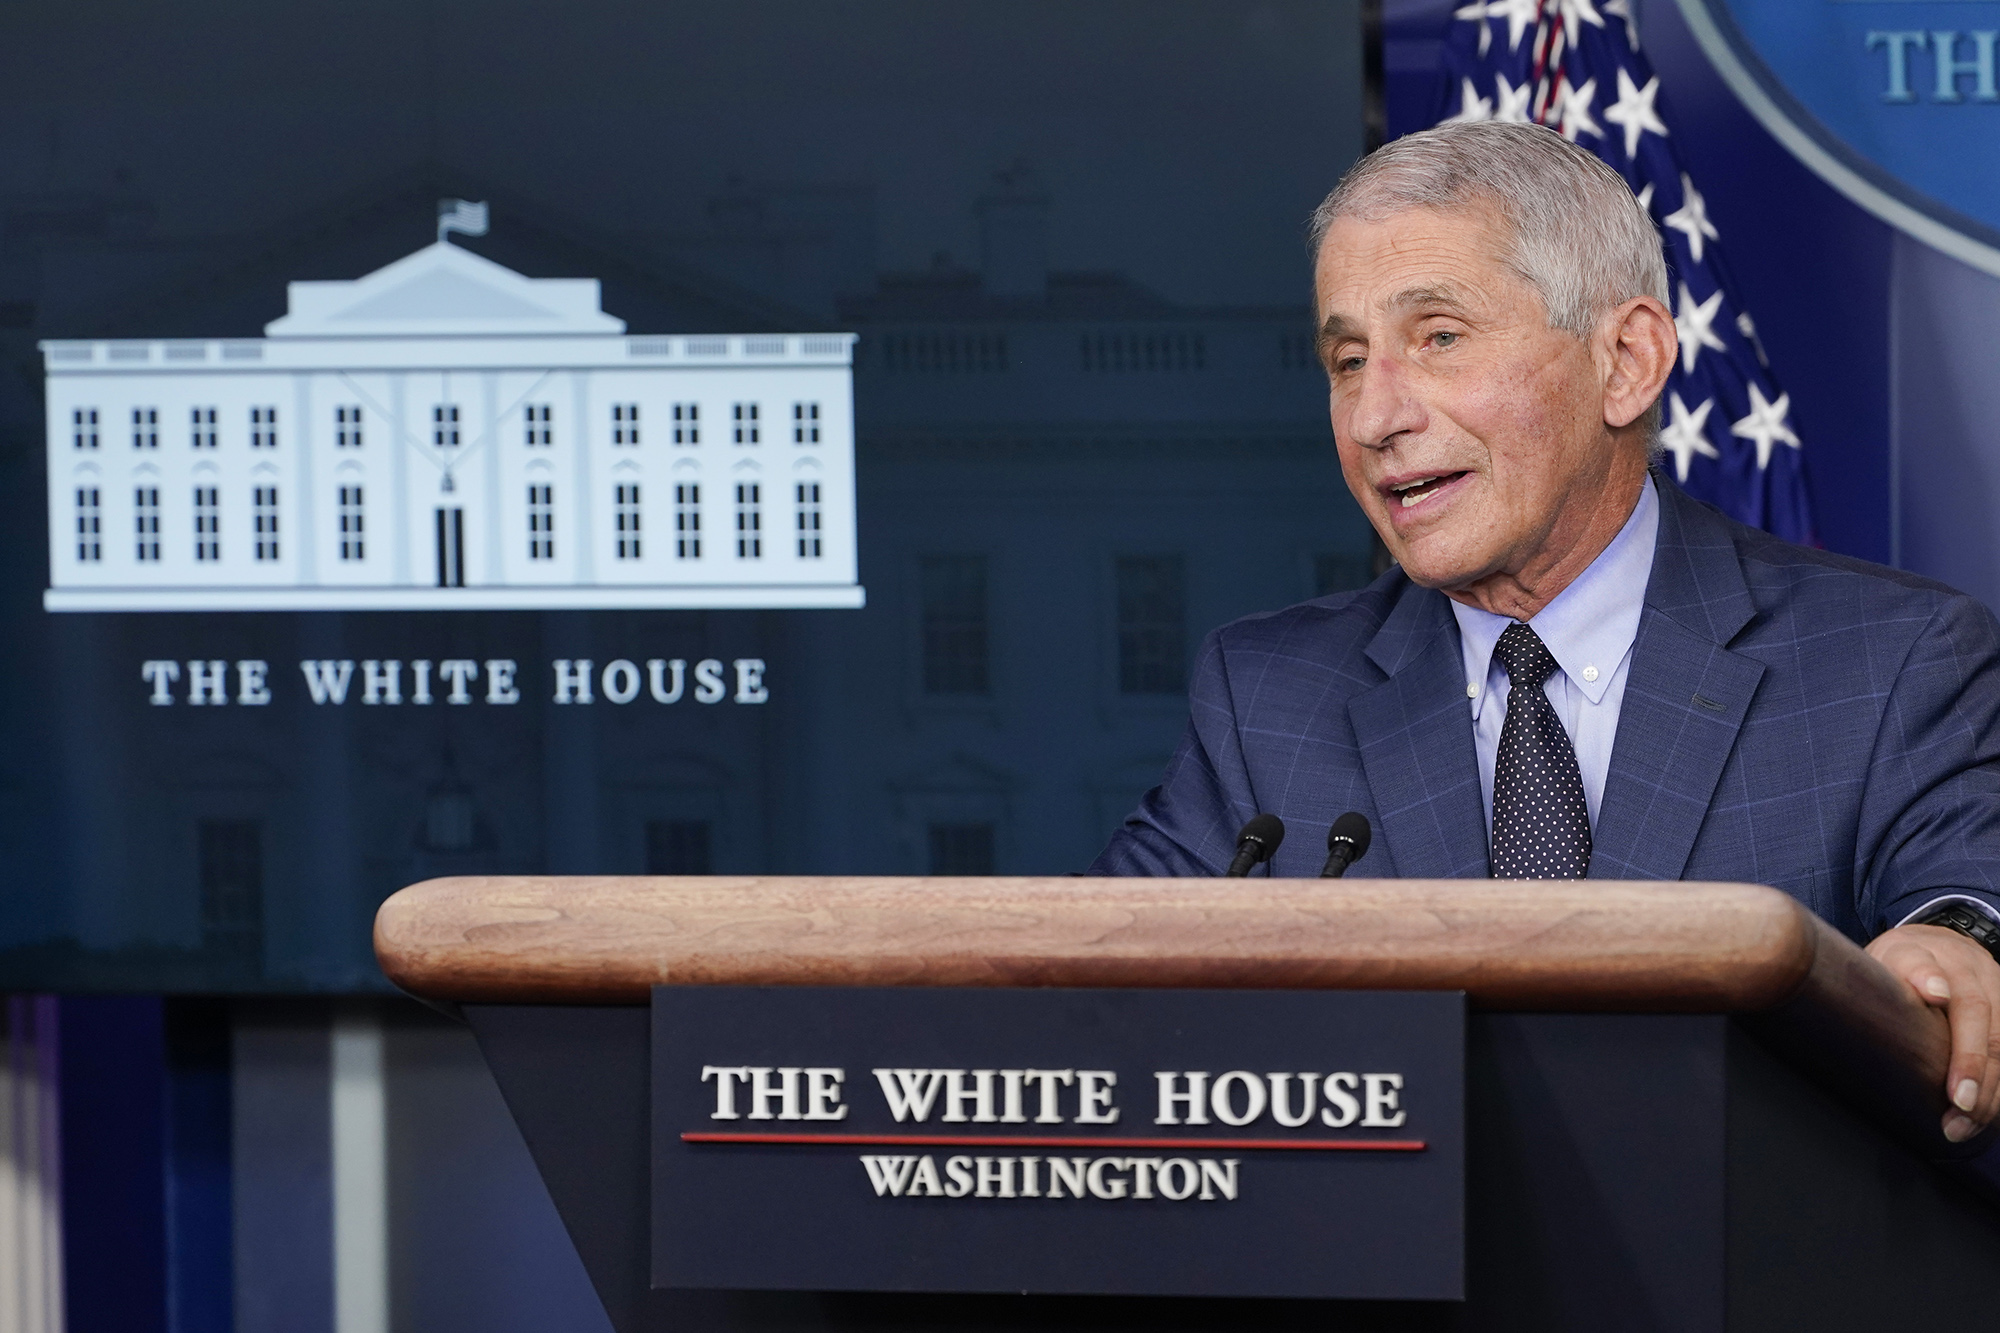 Dr. Anthony Fauci, director of the National Institute for Allergy and Infectious Diseases, speaks during a news conference with the coronavirus task force at the White House in Washington on Thursday.